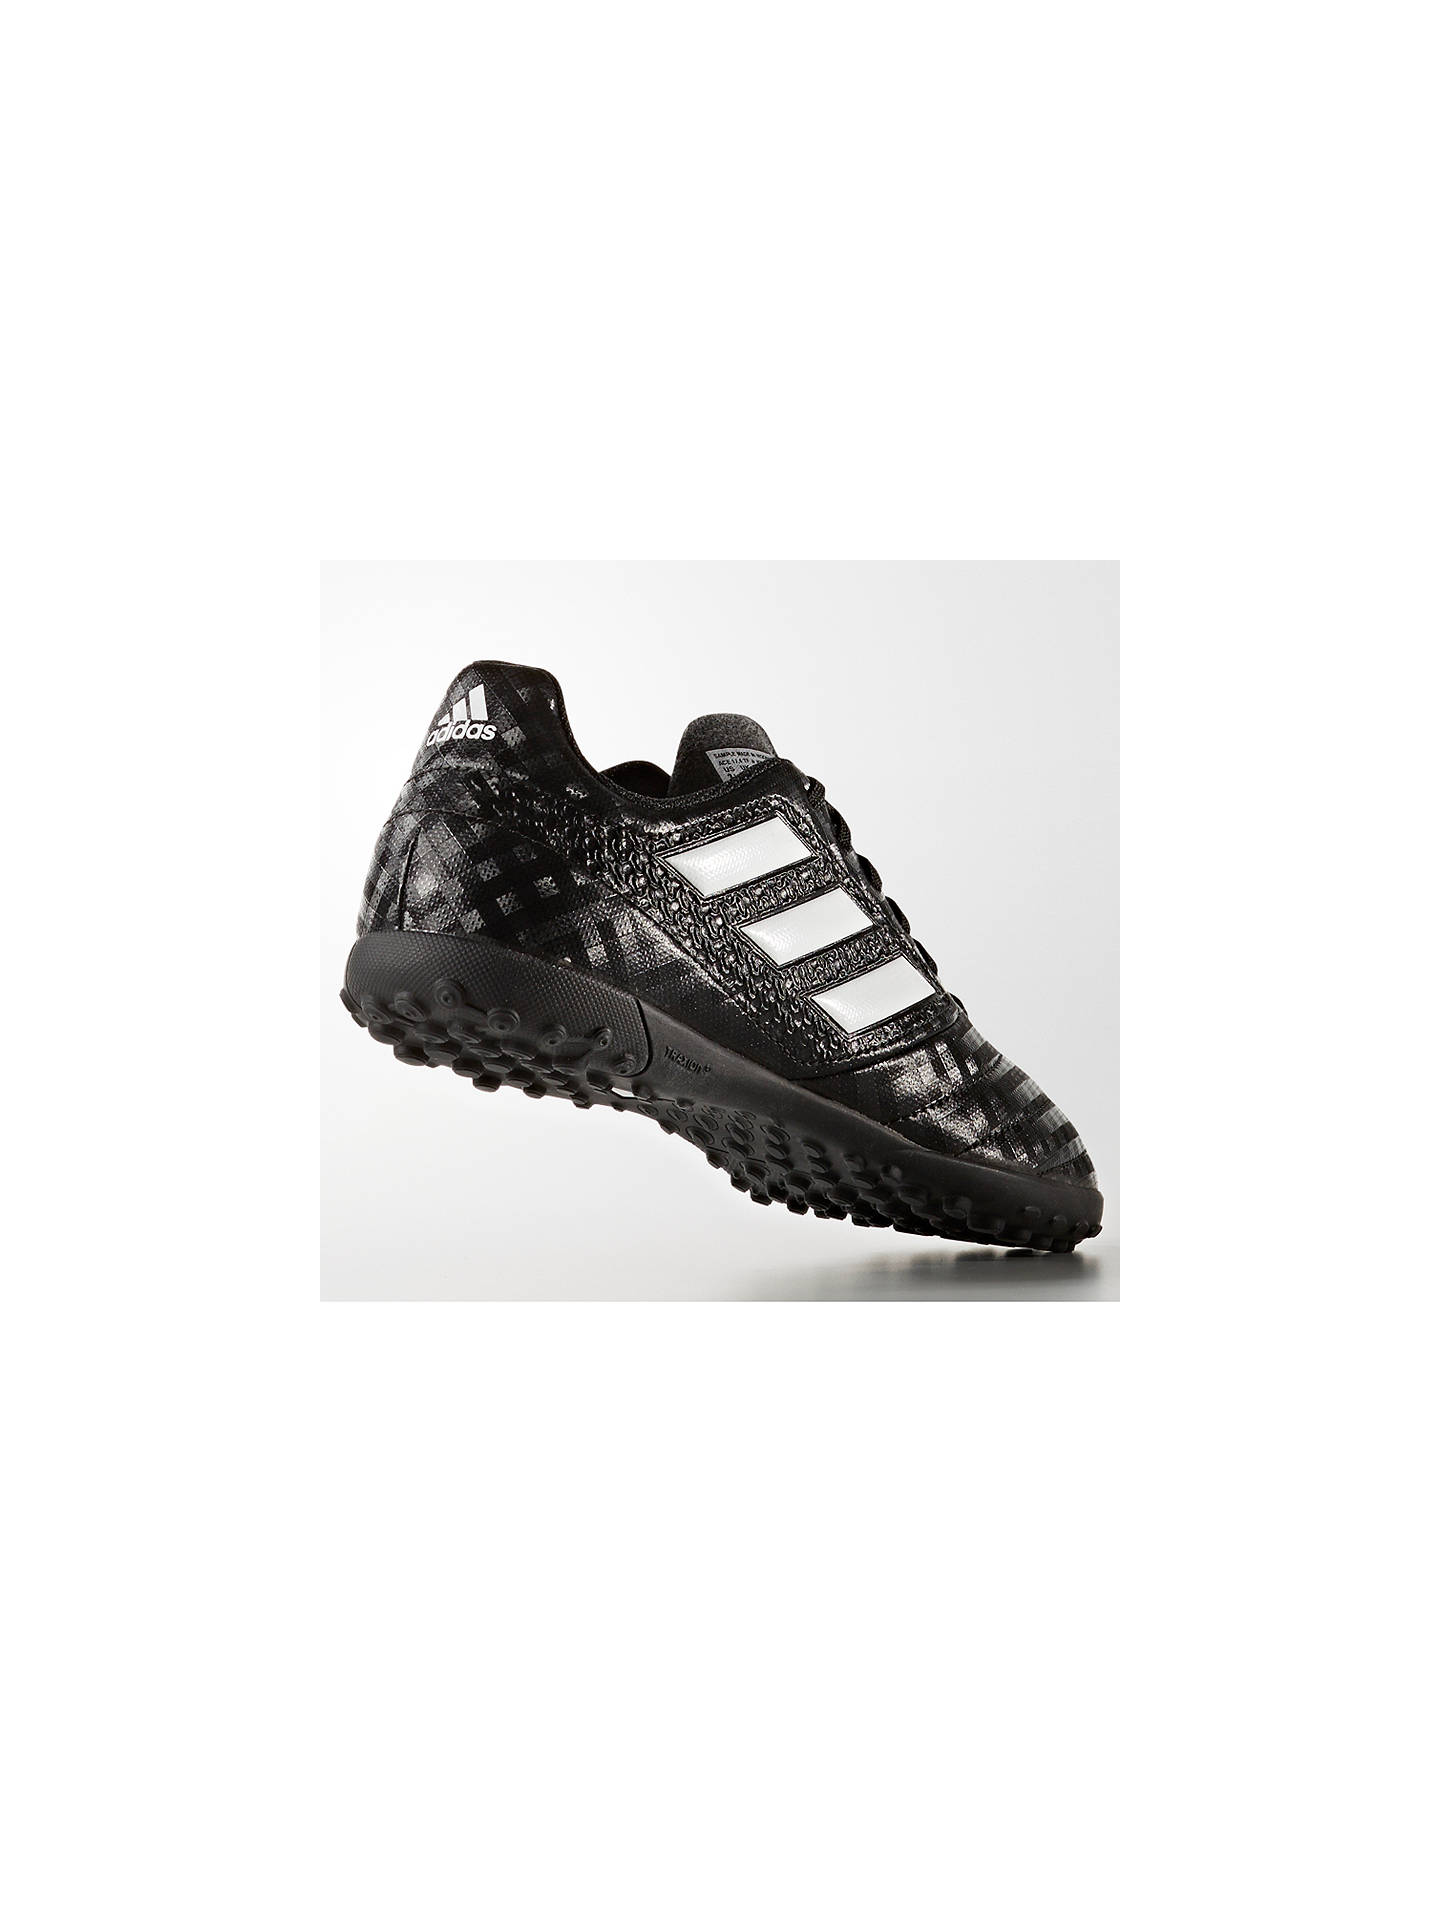 new products ed448 d4d64 adidas Children's Ace 17.4 TF Football Boots, Black at John ...